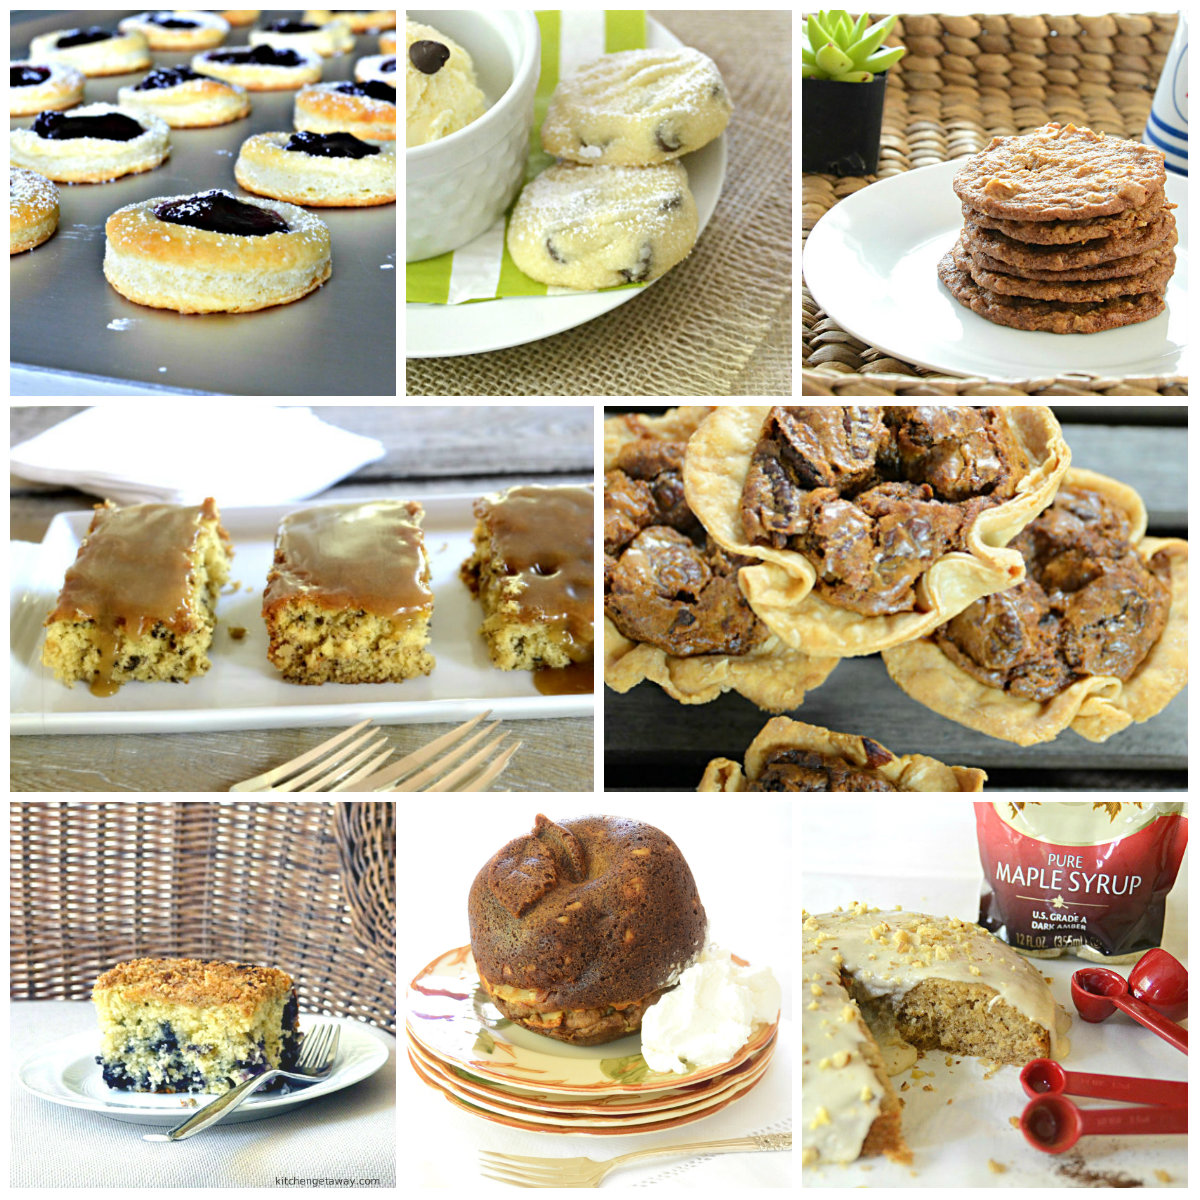 Simple Baked Desserts